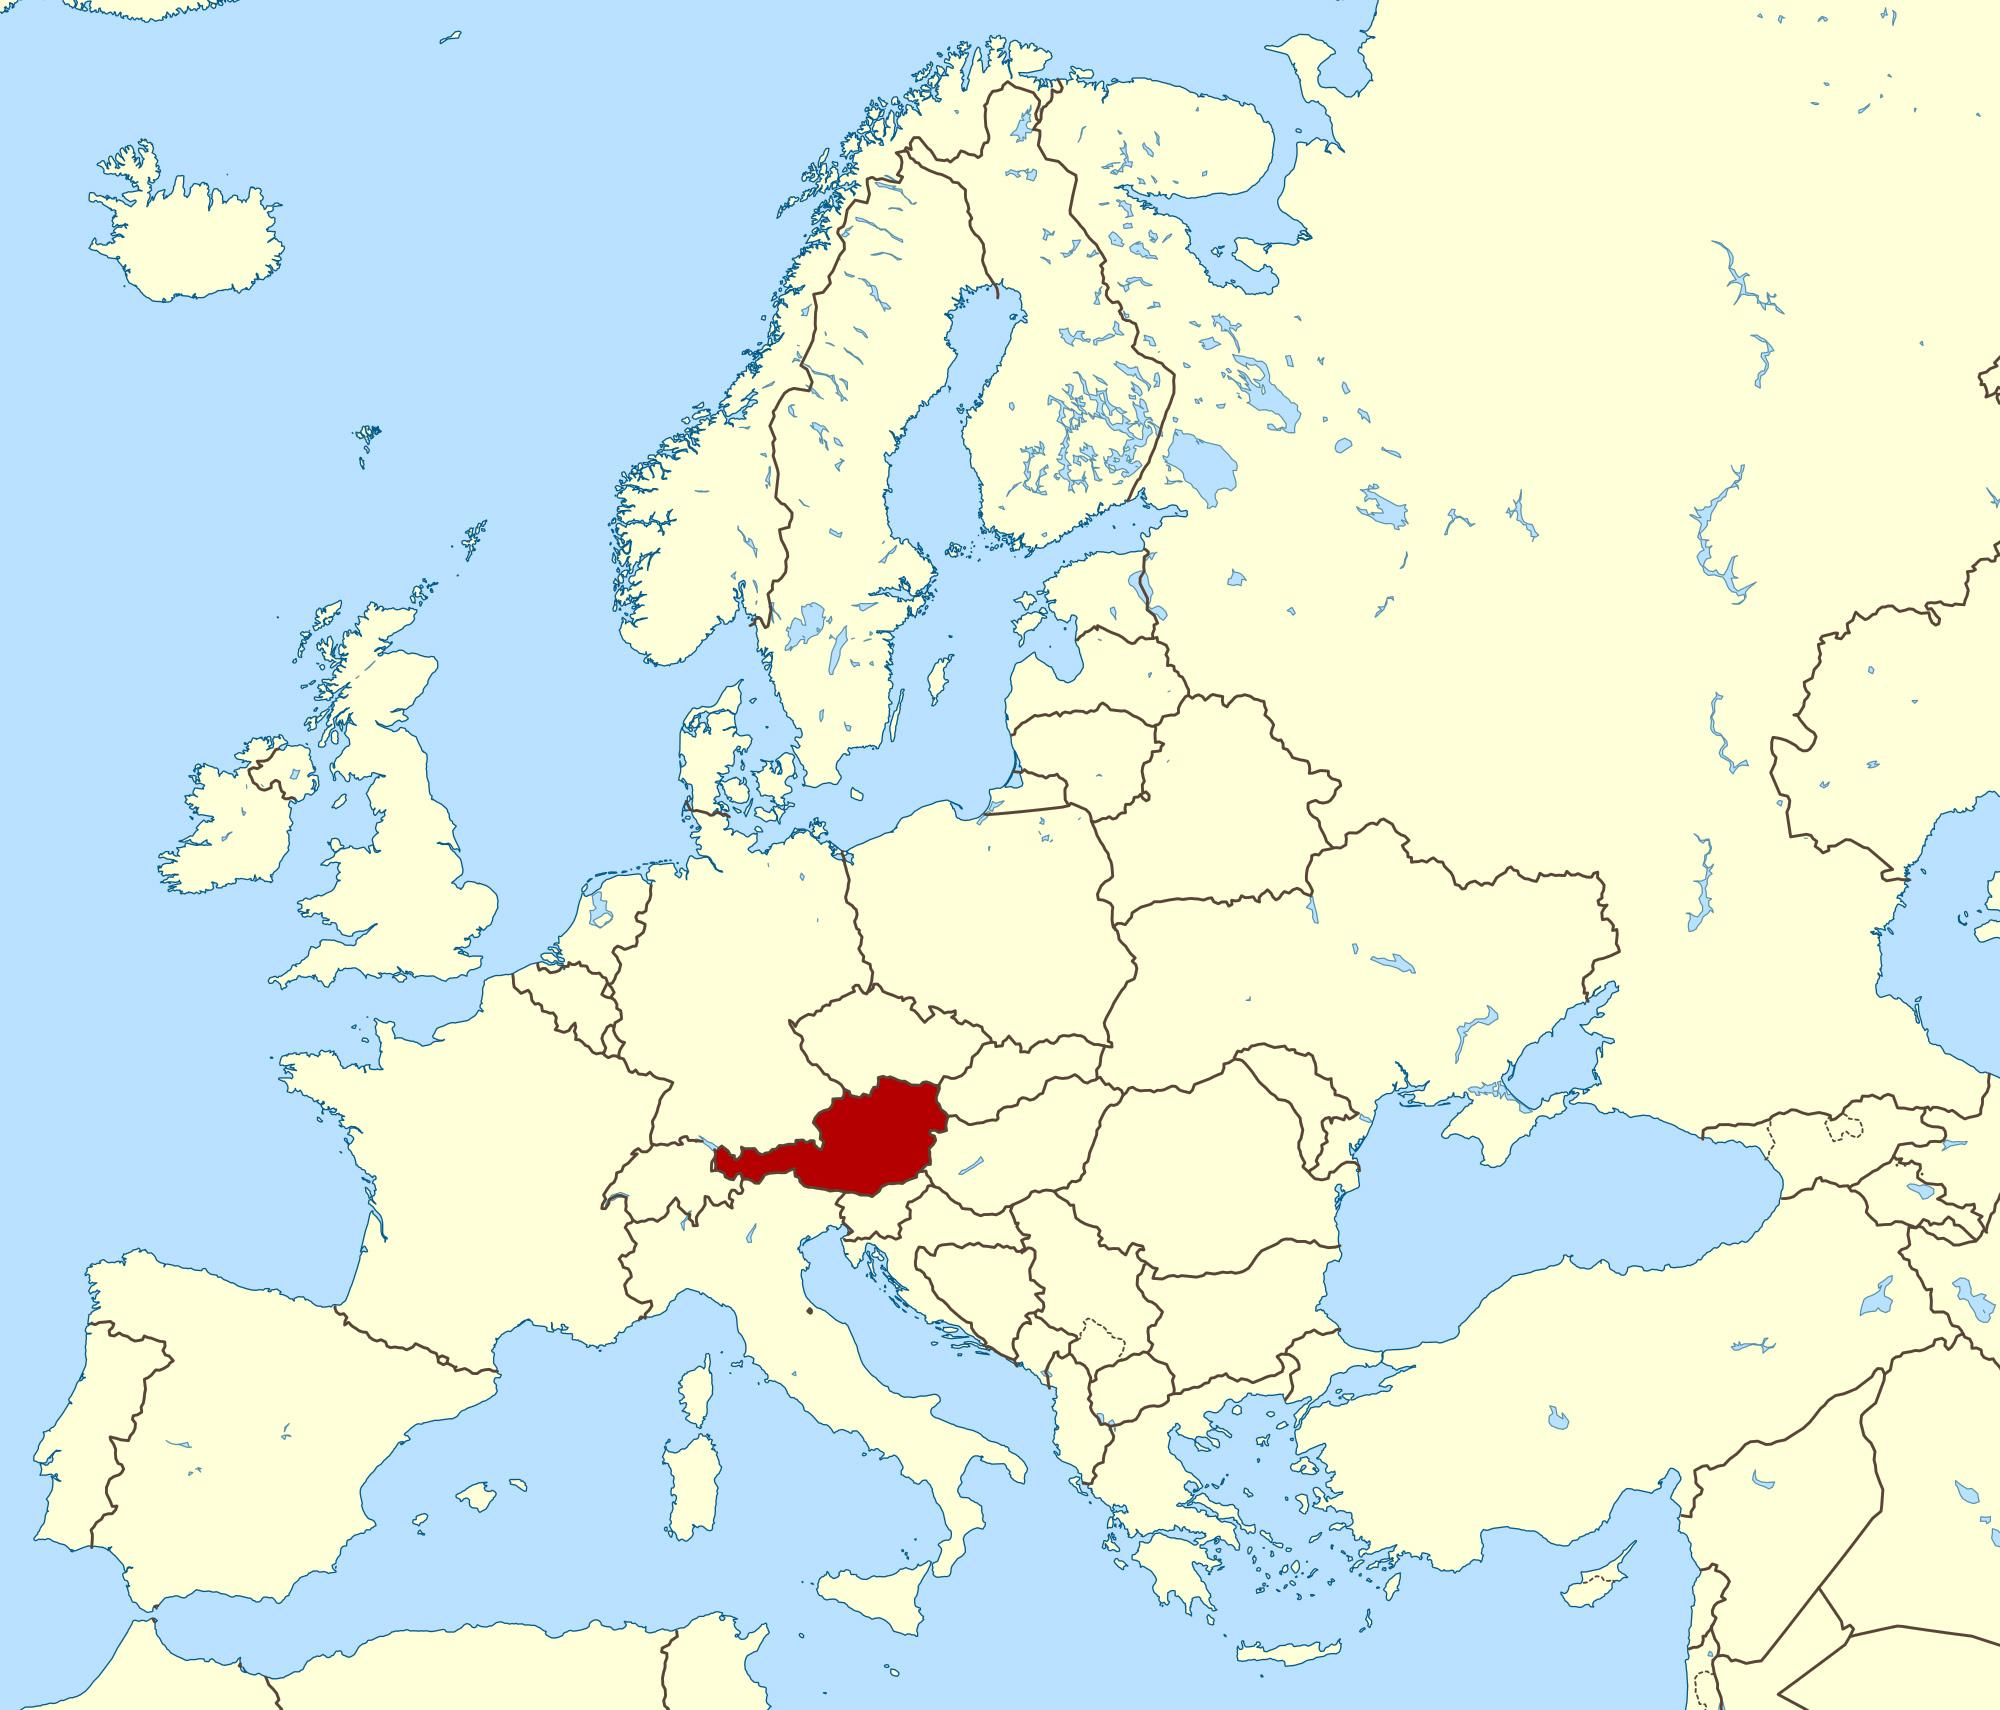 Image of: Austria Location On World Map World Map Showing Austria Western Europe Europe